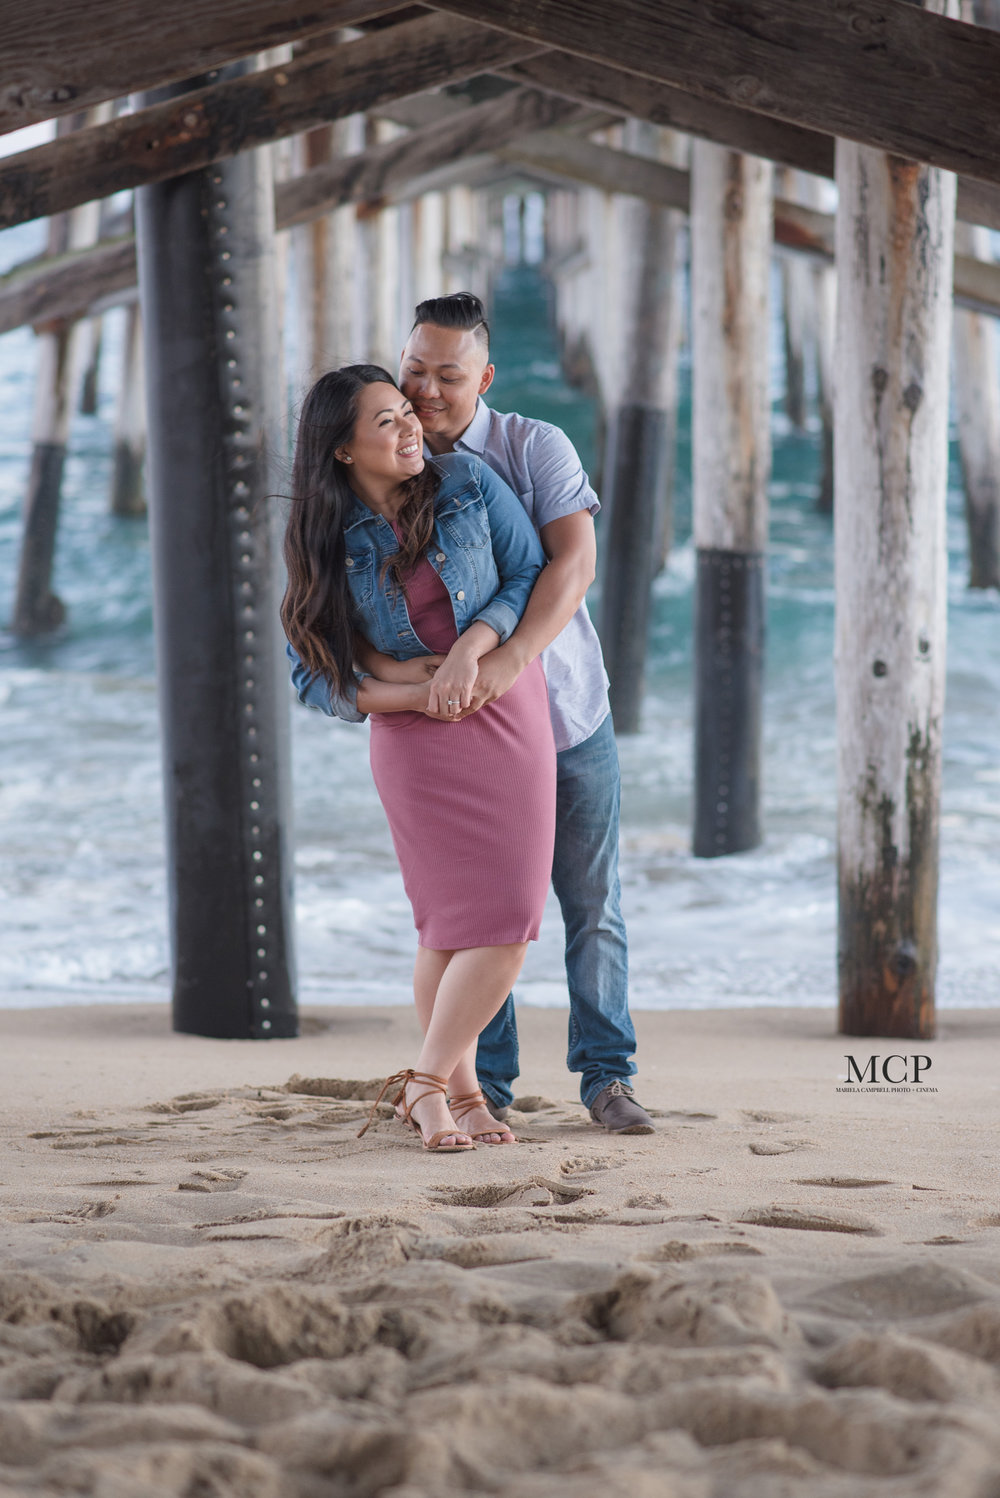 L&D -Engagement 8.8.17- Blog - MCP-16.jpg